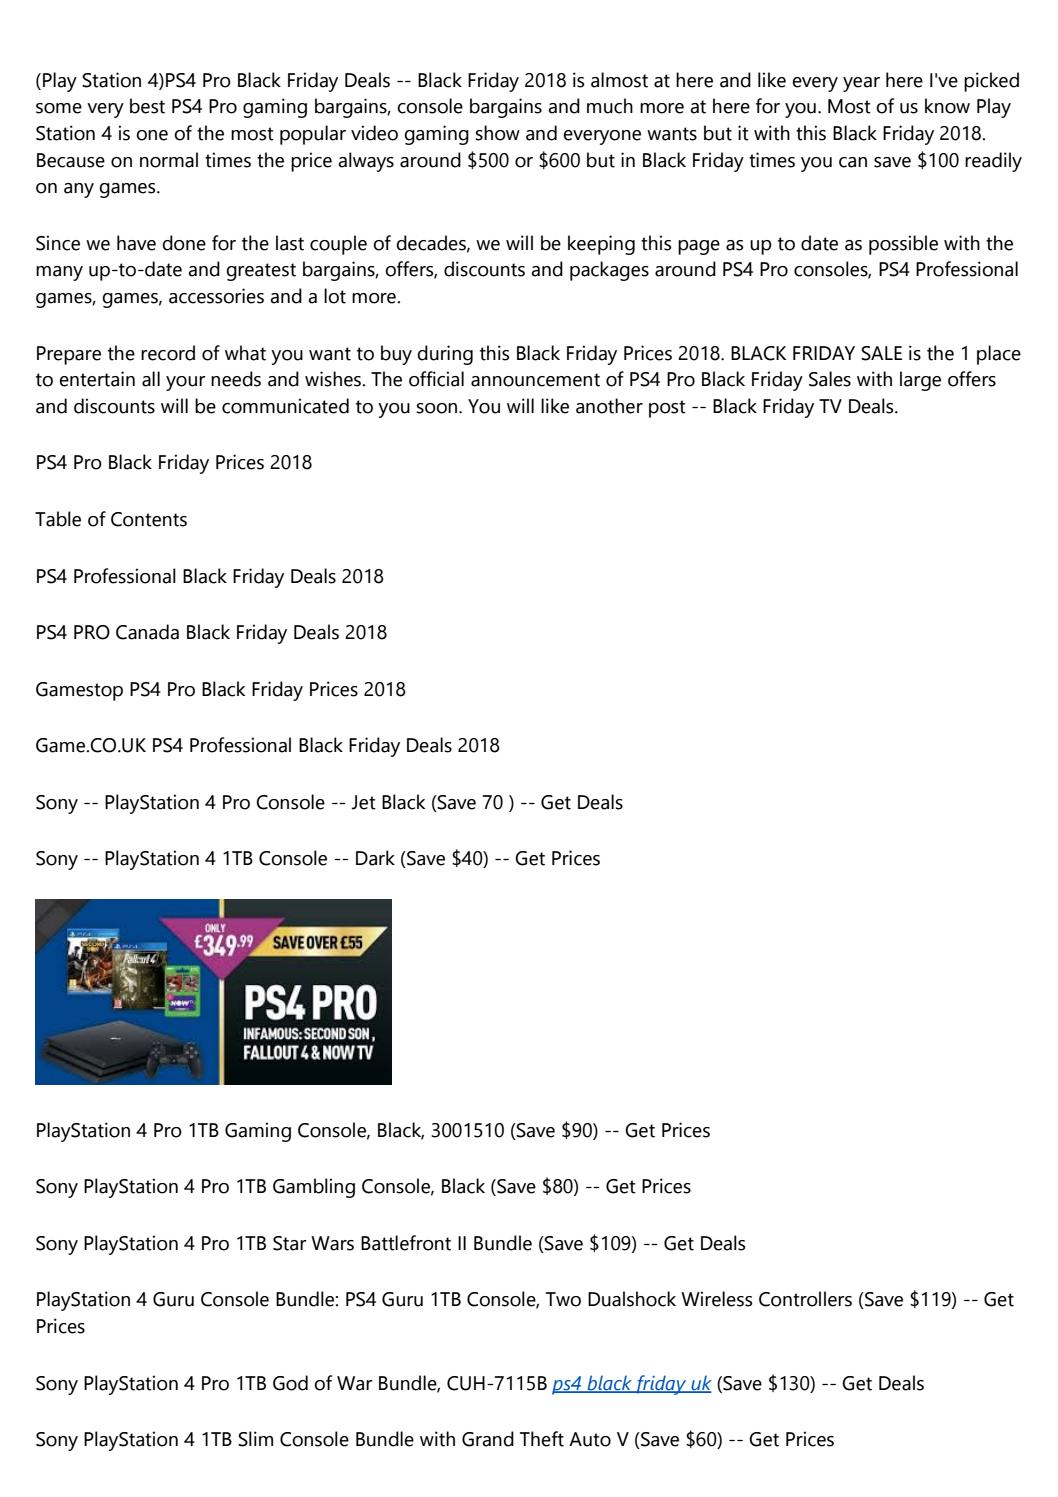 10 Best PS4 Pro Black Friday Deals 2018 – Save $100 on PS4